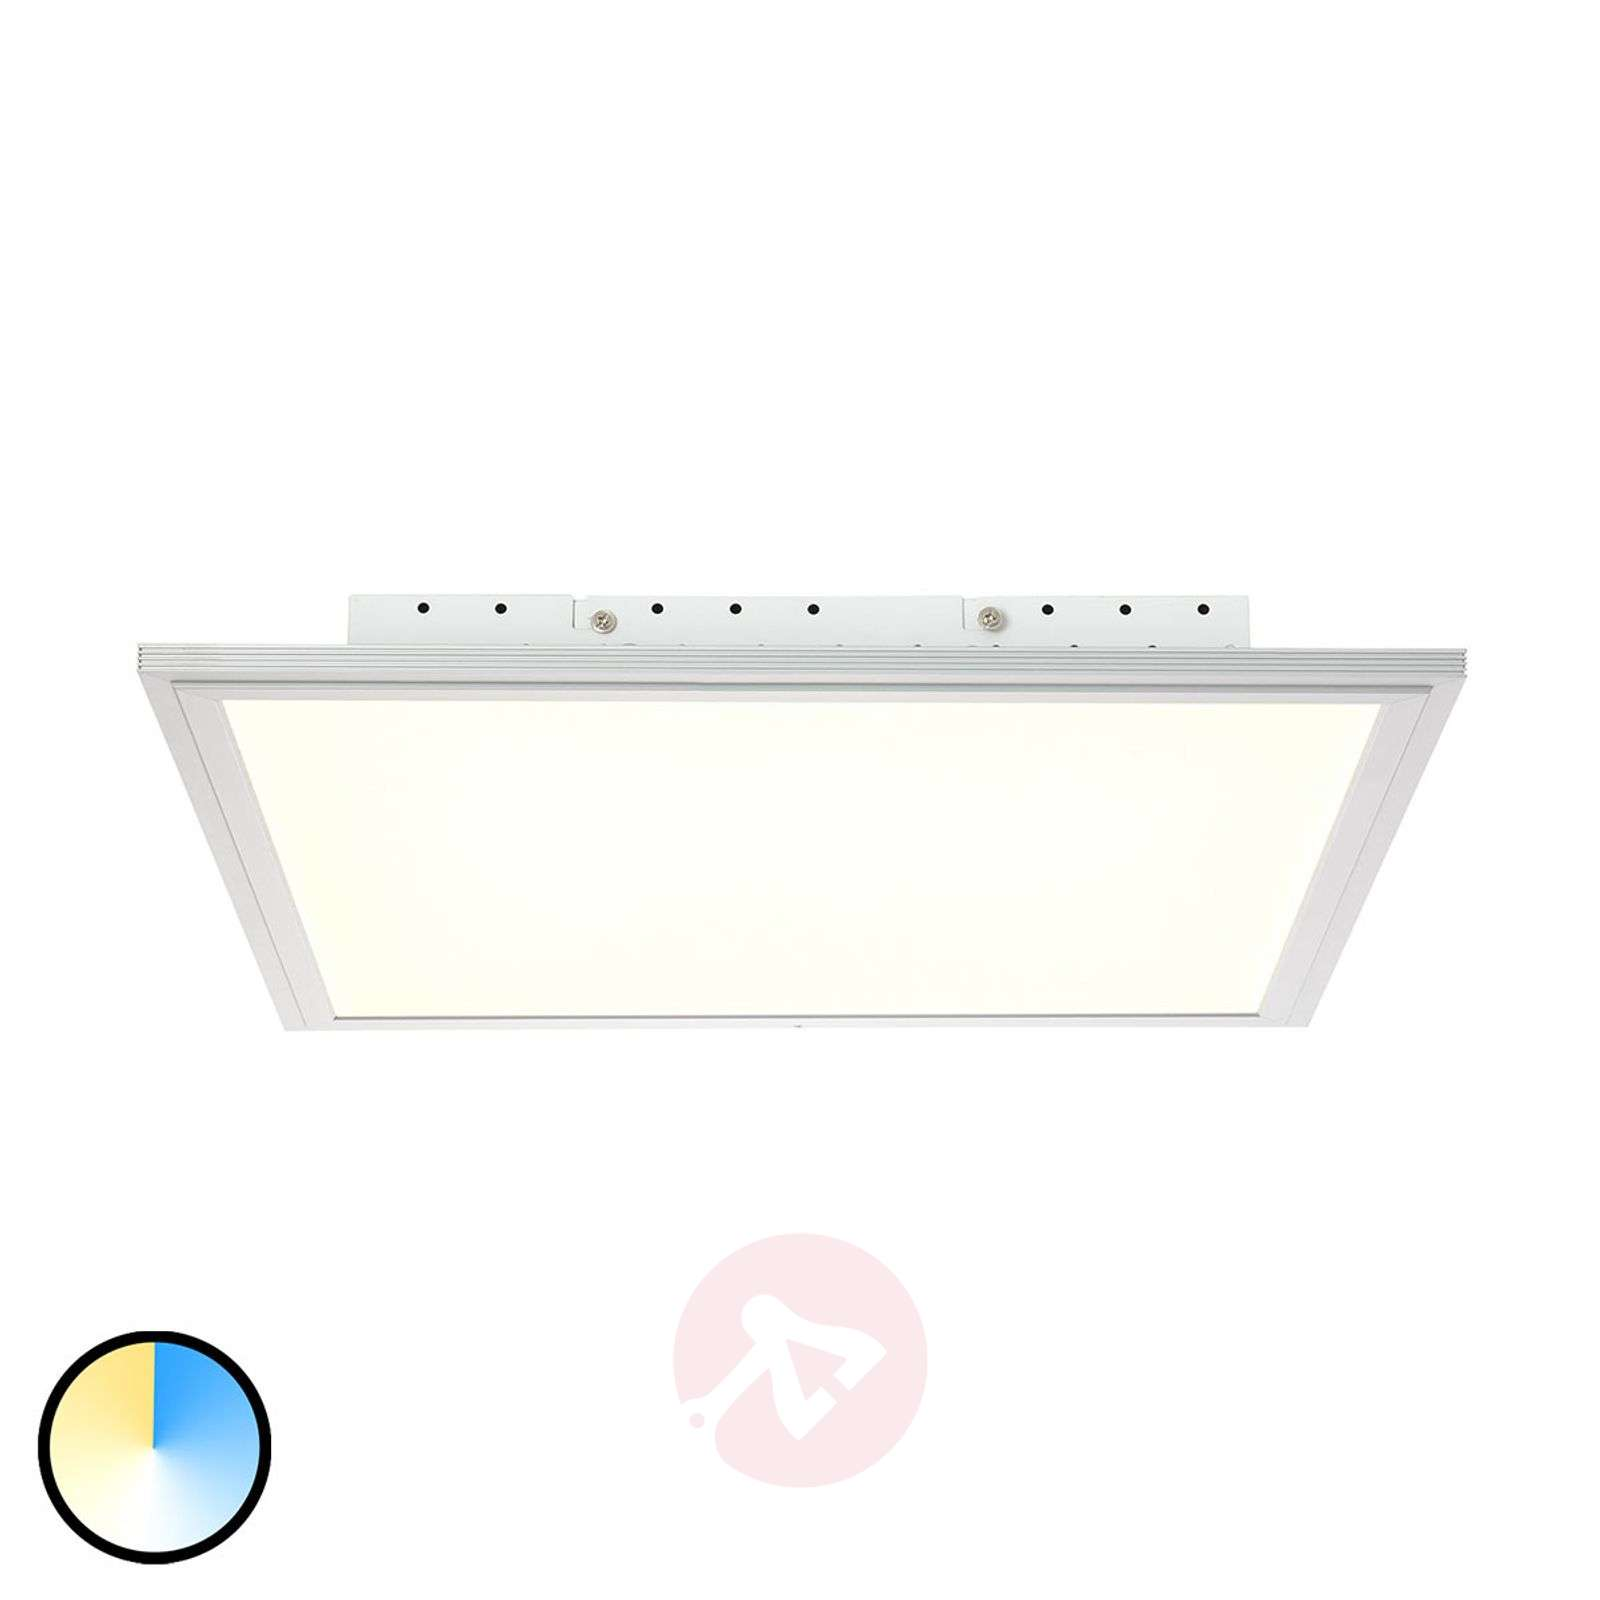 Brilliant WiZ plafonnier LED Flat 42 cm-1509479-01